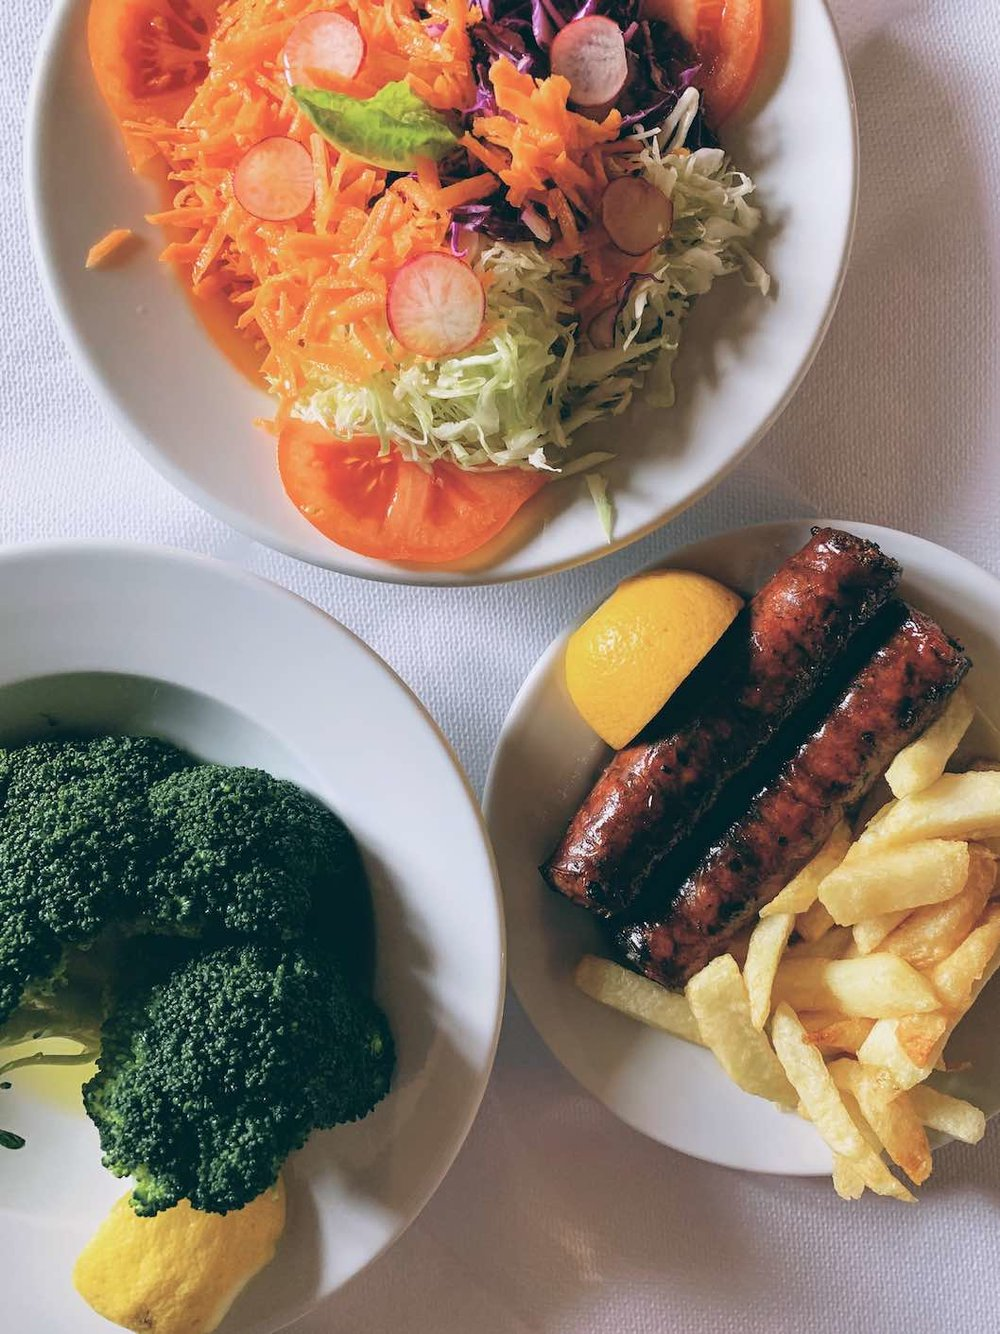 Salad starters and grilled sausage